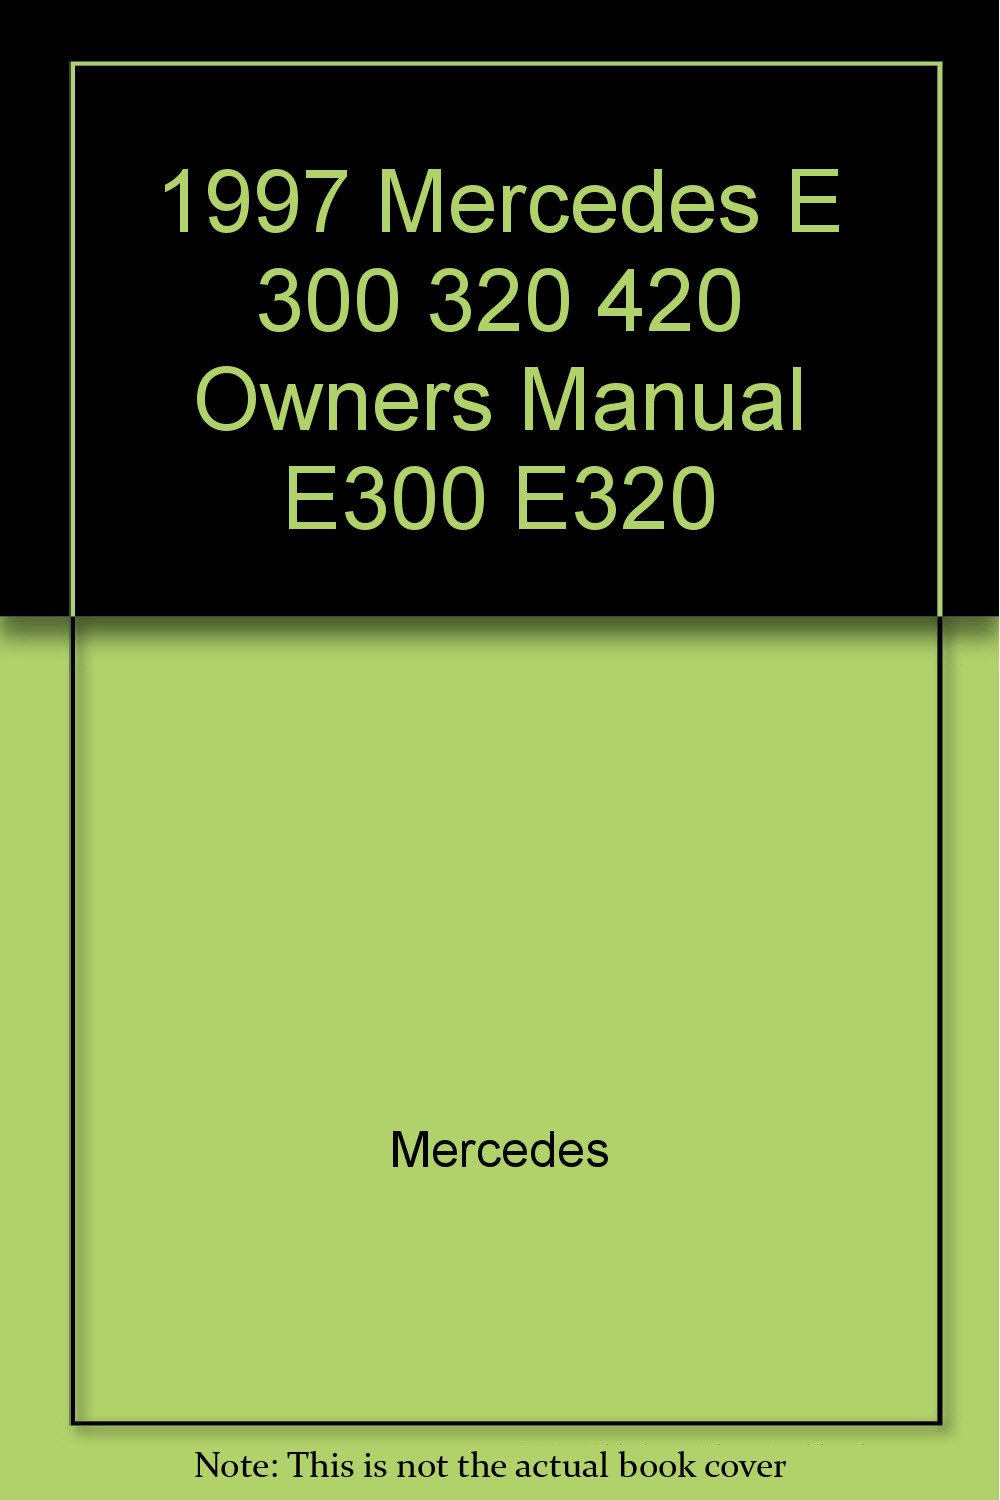 1997 Mercedes E 300 320 420 Owners Manual E300 E320: Mercedes: Amazon.com:  Books